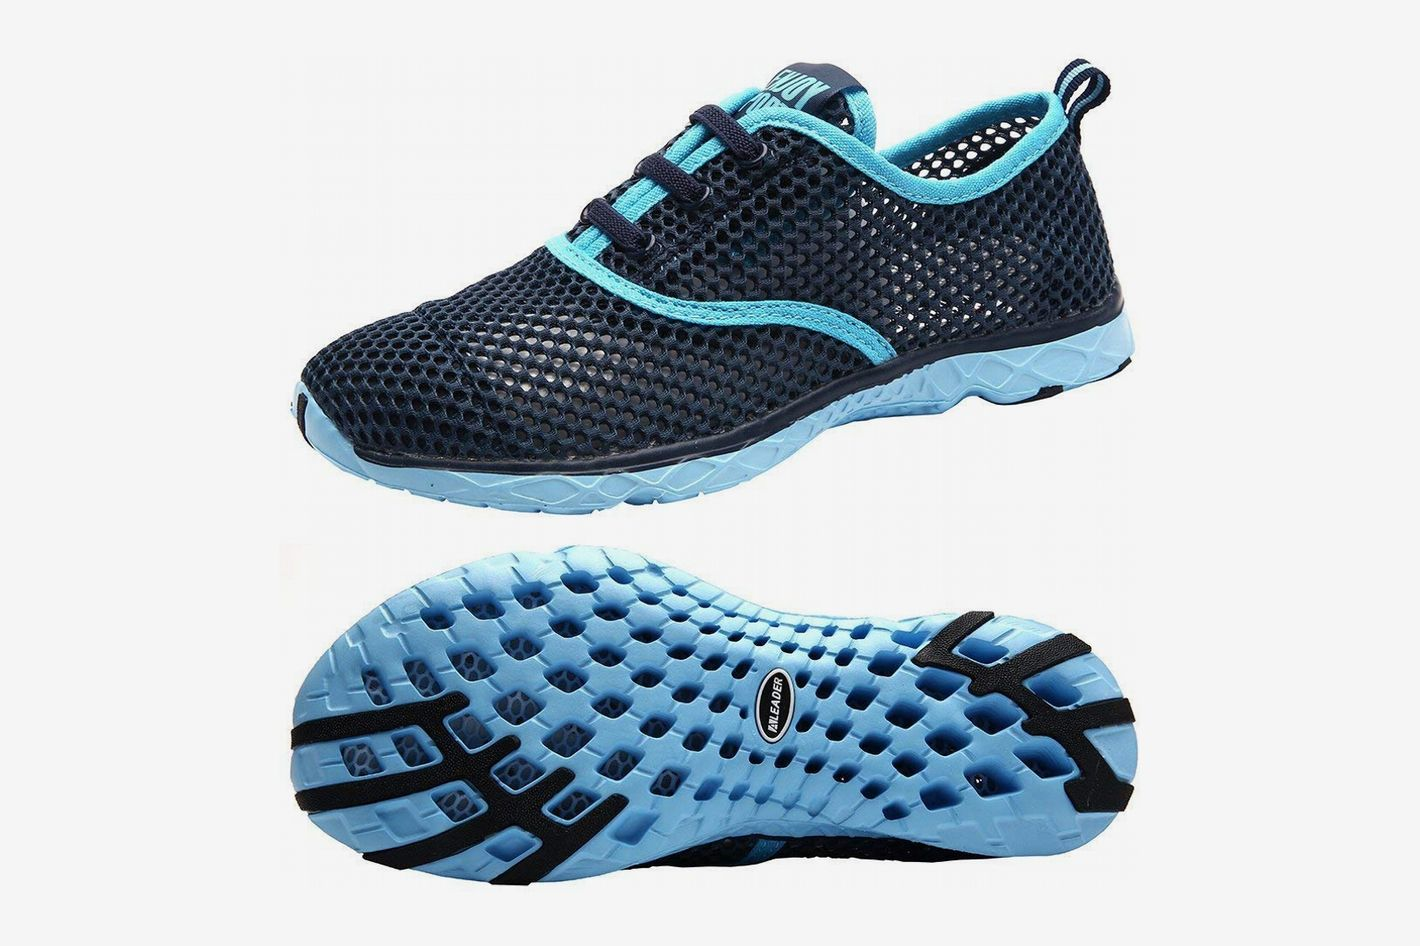 cc6536c26 Best mesh water sneaker. best water shoes. Aleader Women s Quick-Drying Aqua  ...